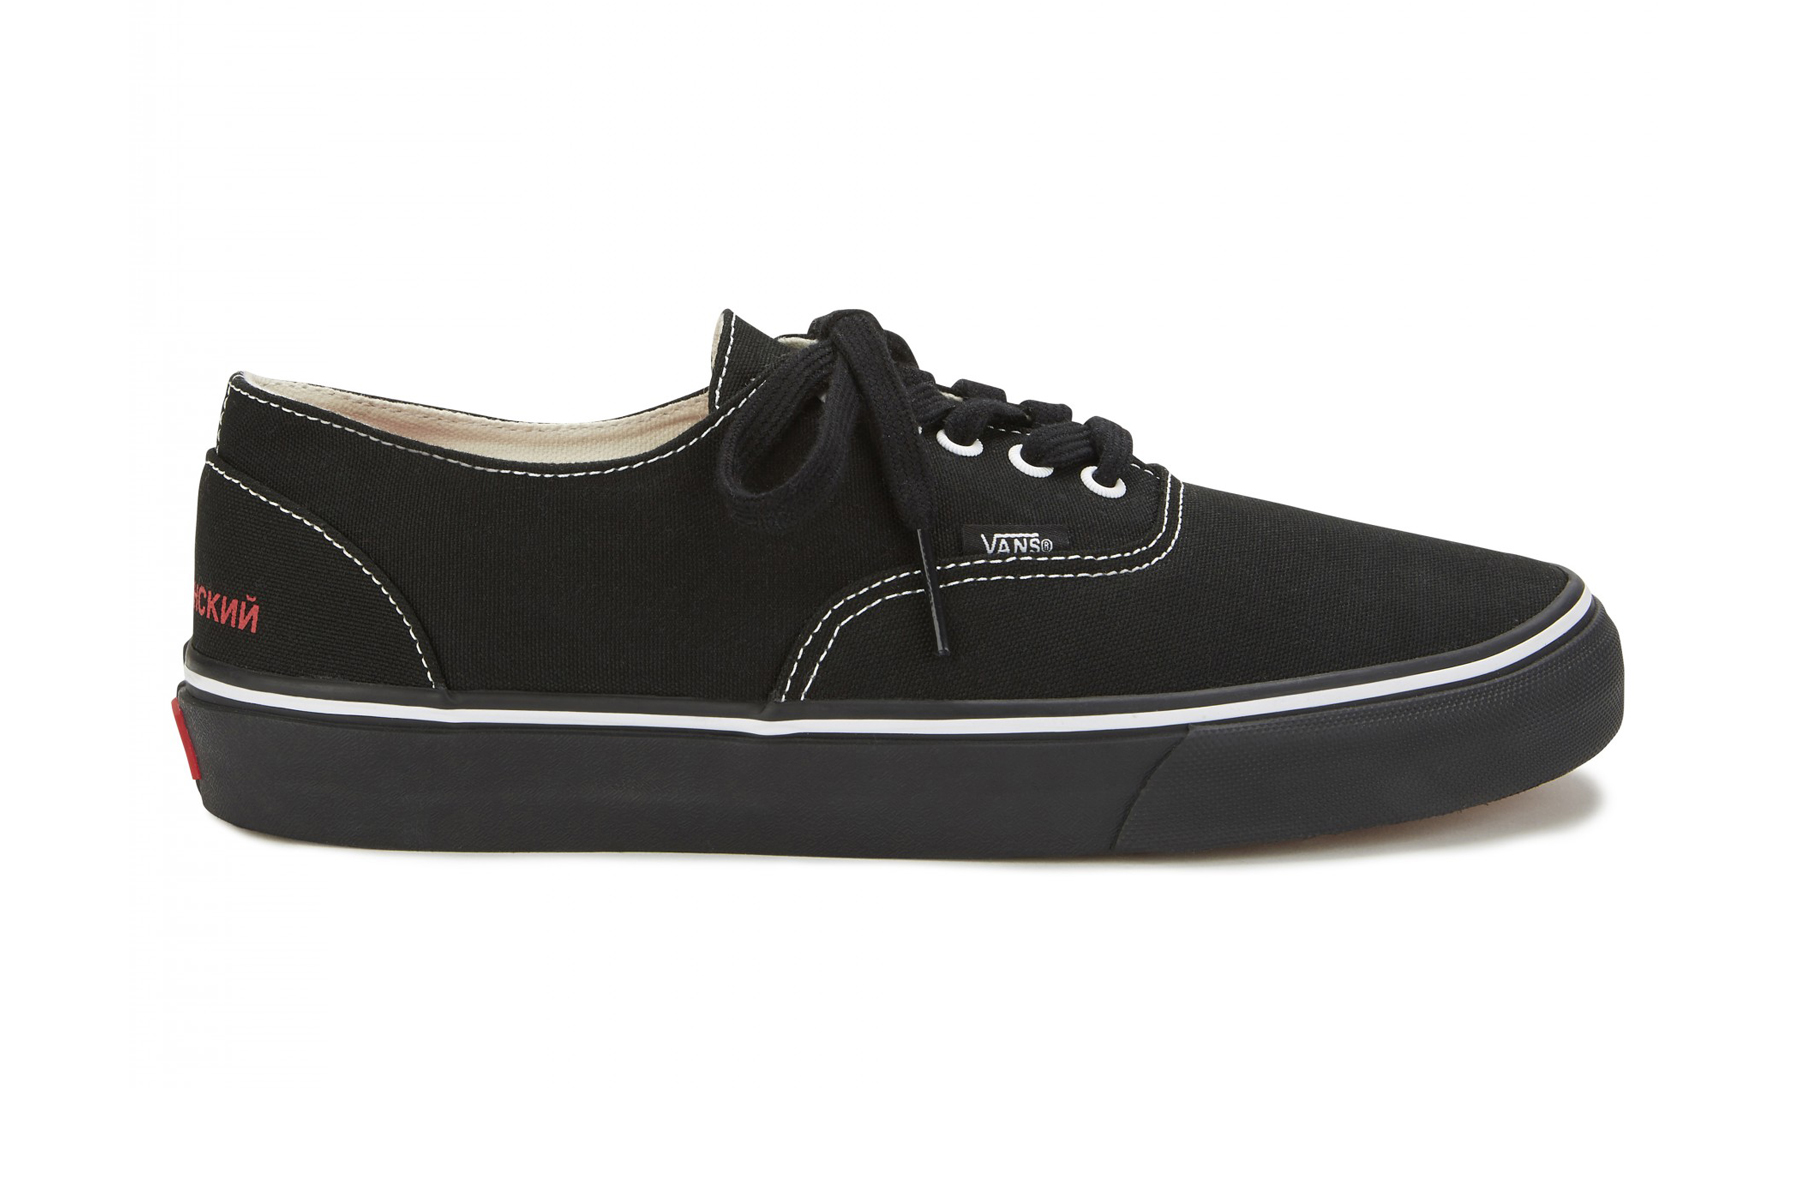 Gosha Rubchinskiy Puts His Spin on Yet Another Classic Vans Silhouette